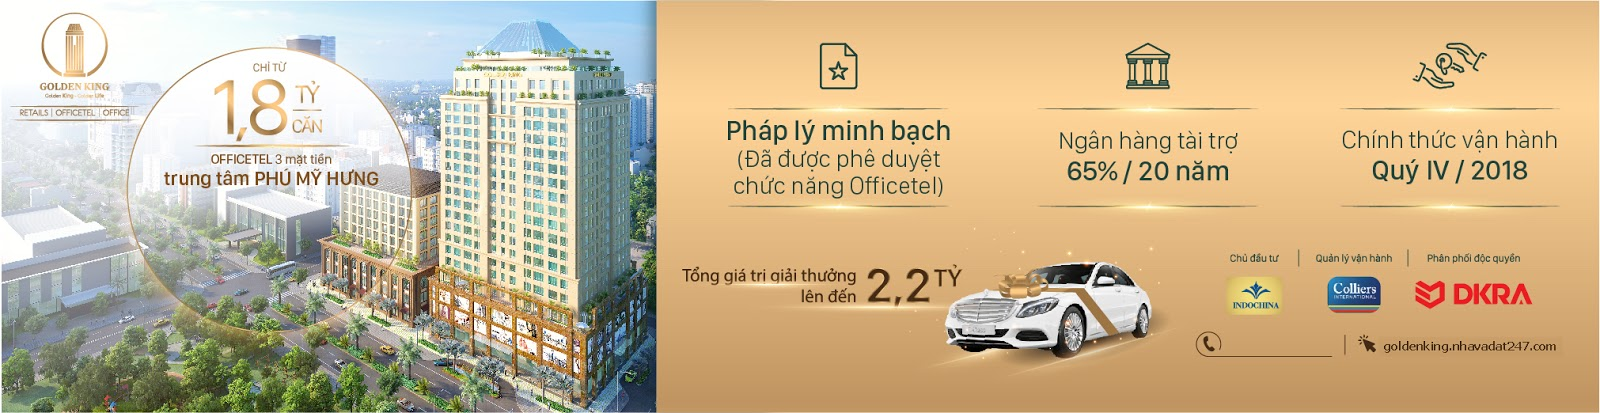 BẢNG GIÁ OFFICETEL GOLDEN KING